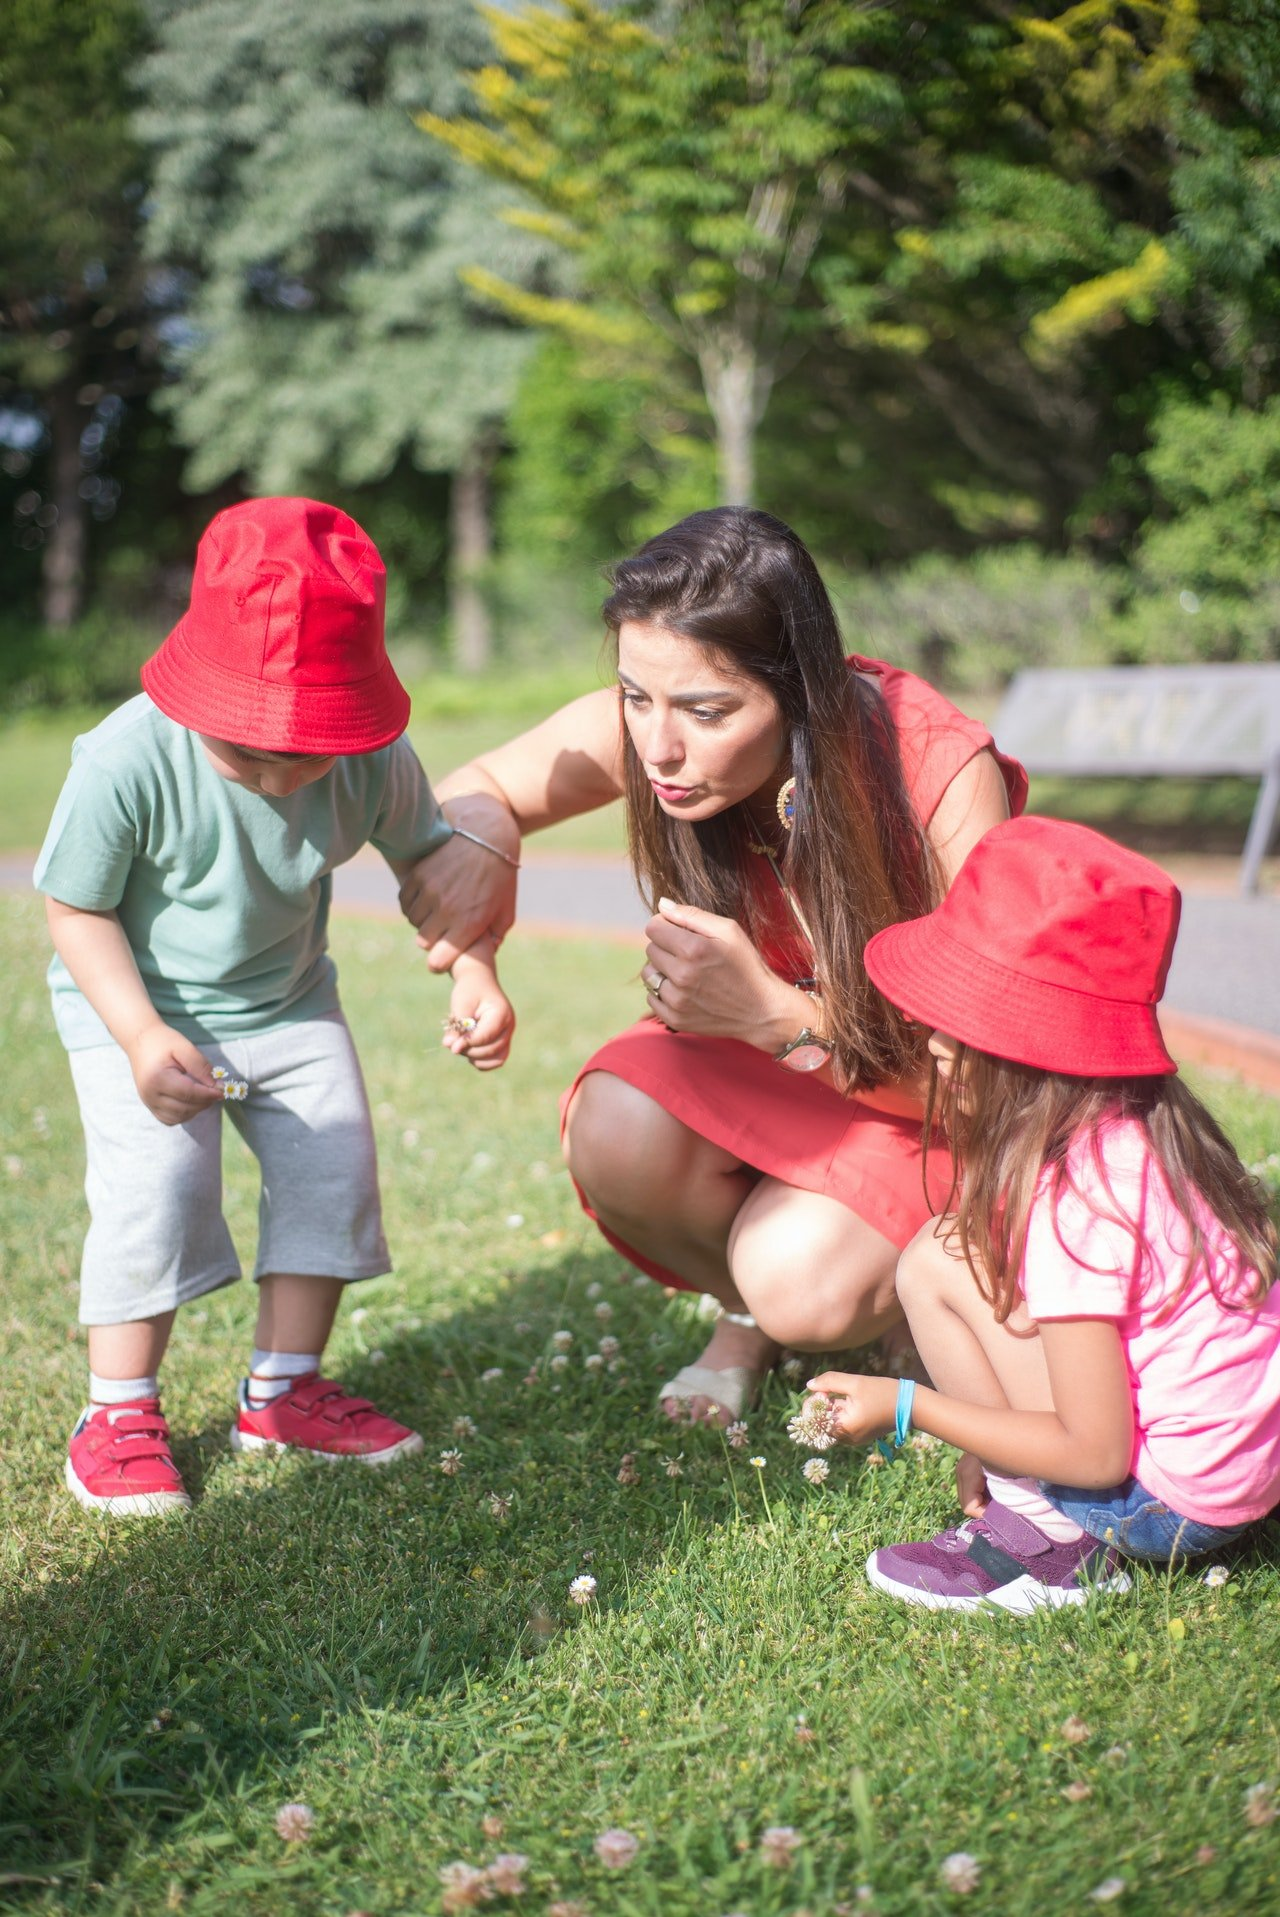 Woman having fun and playing with kids   Photo: Pexels